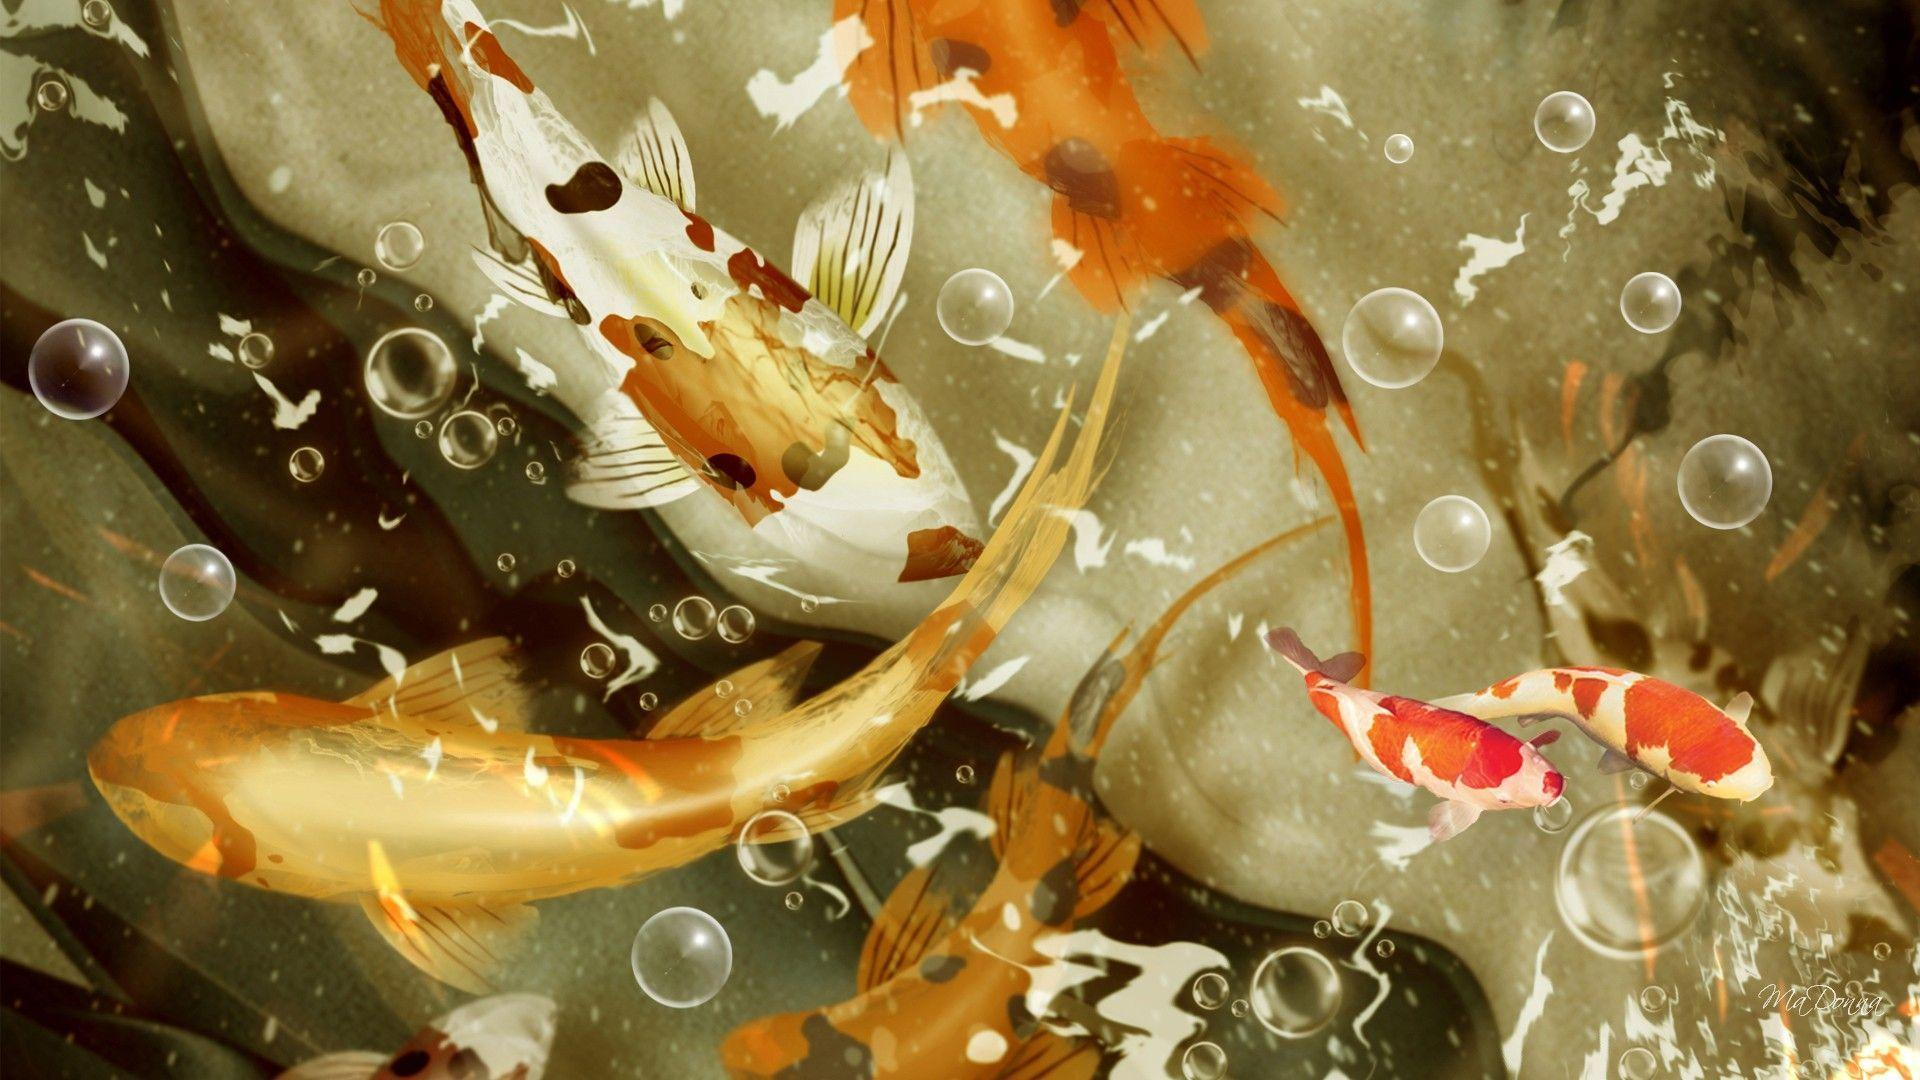 Koi fish wallpapers wallpaper cave for What is a koi fish